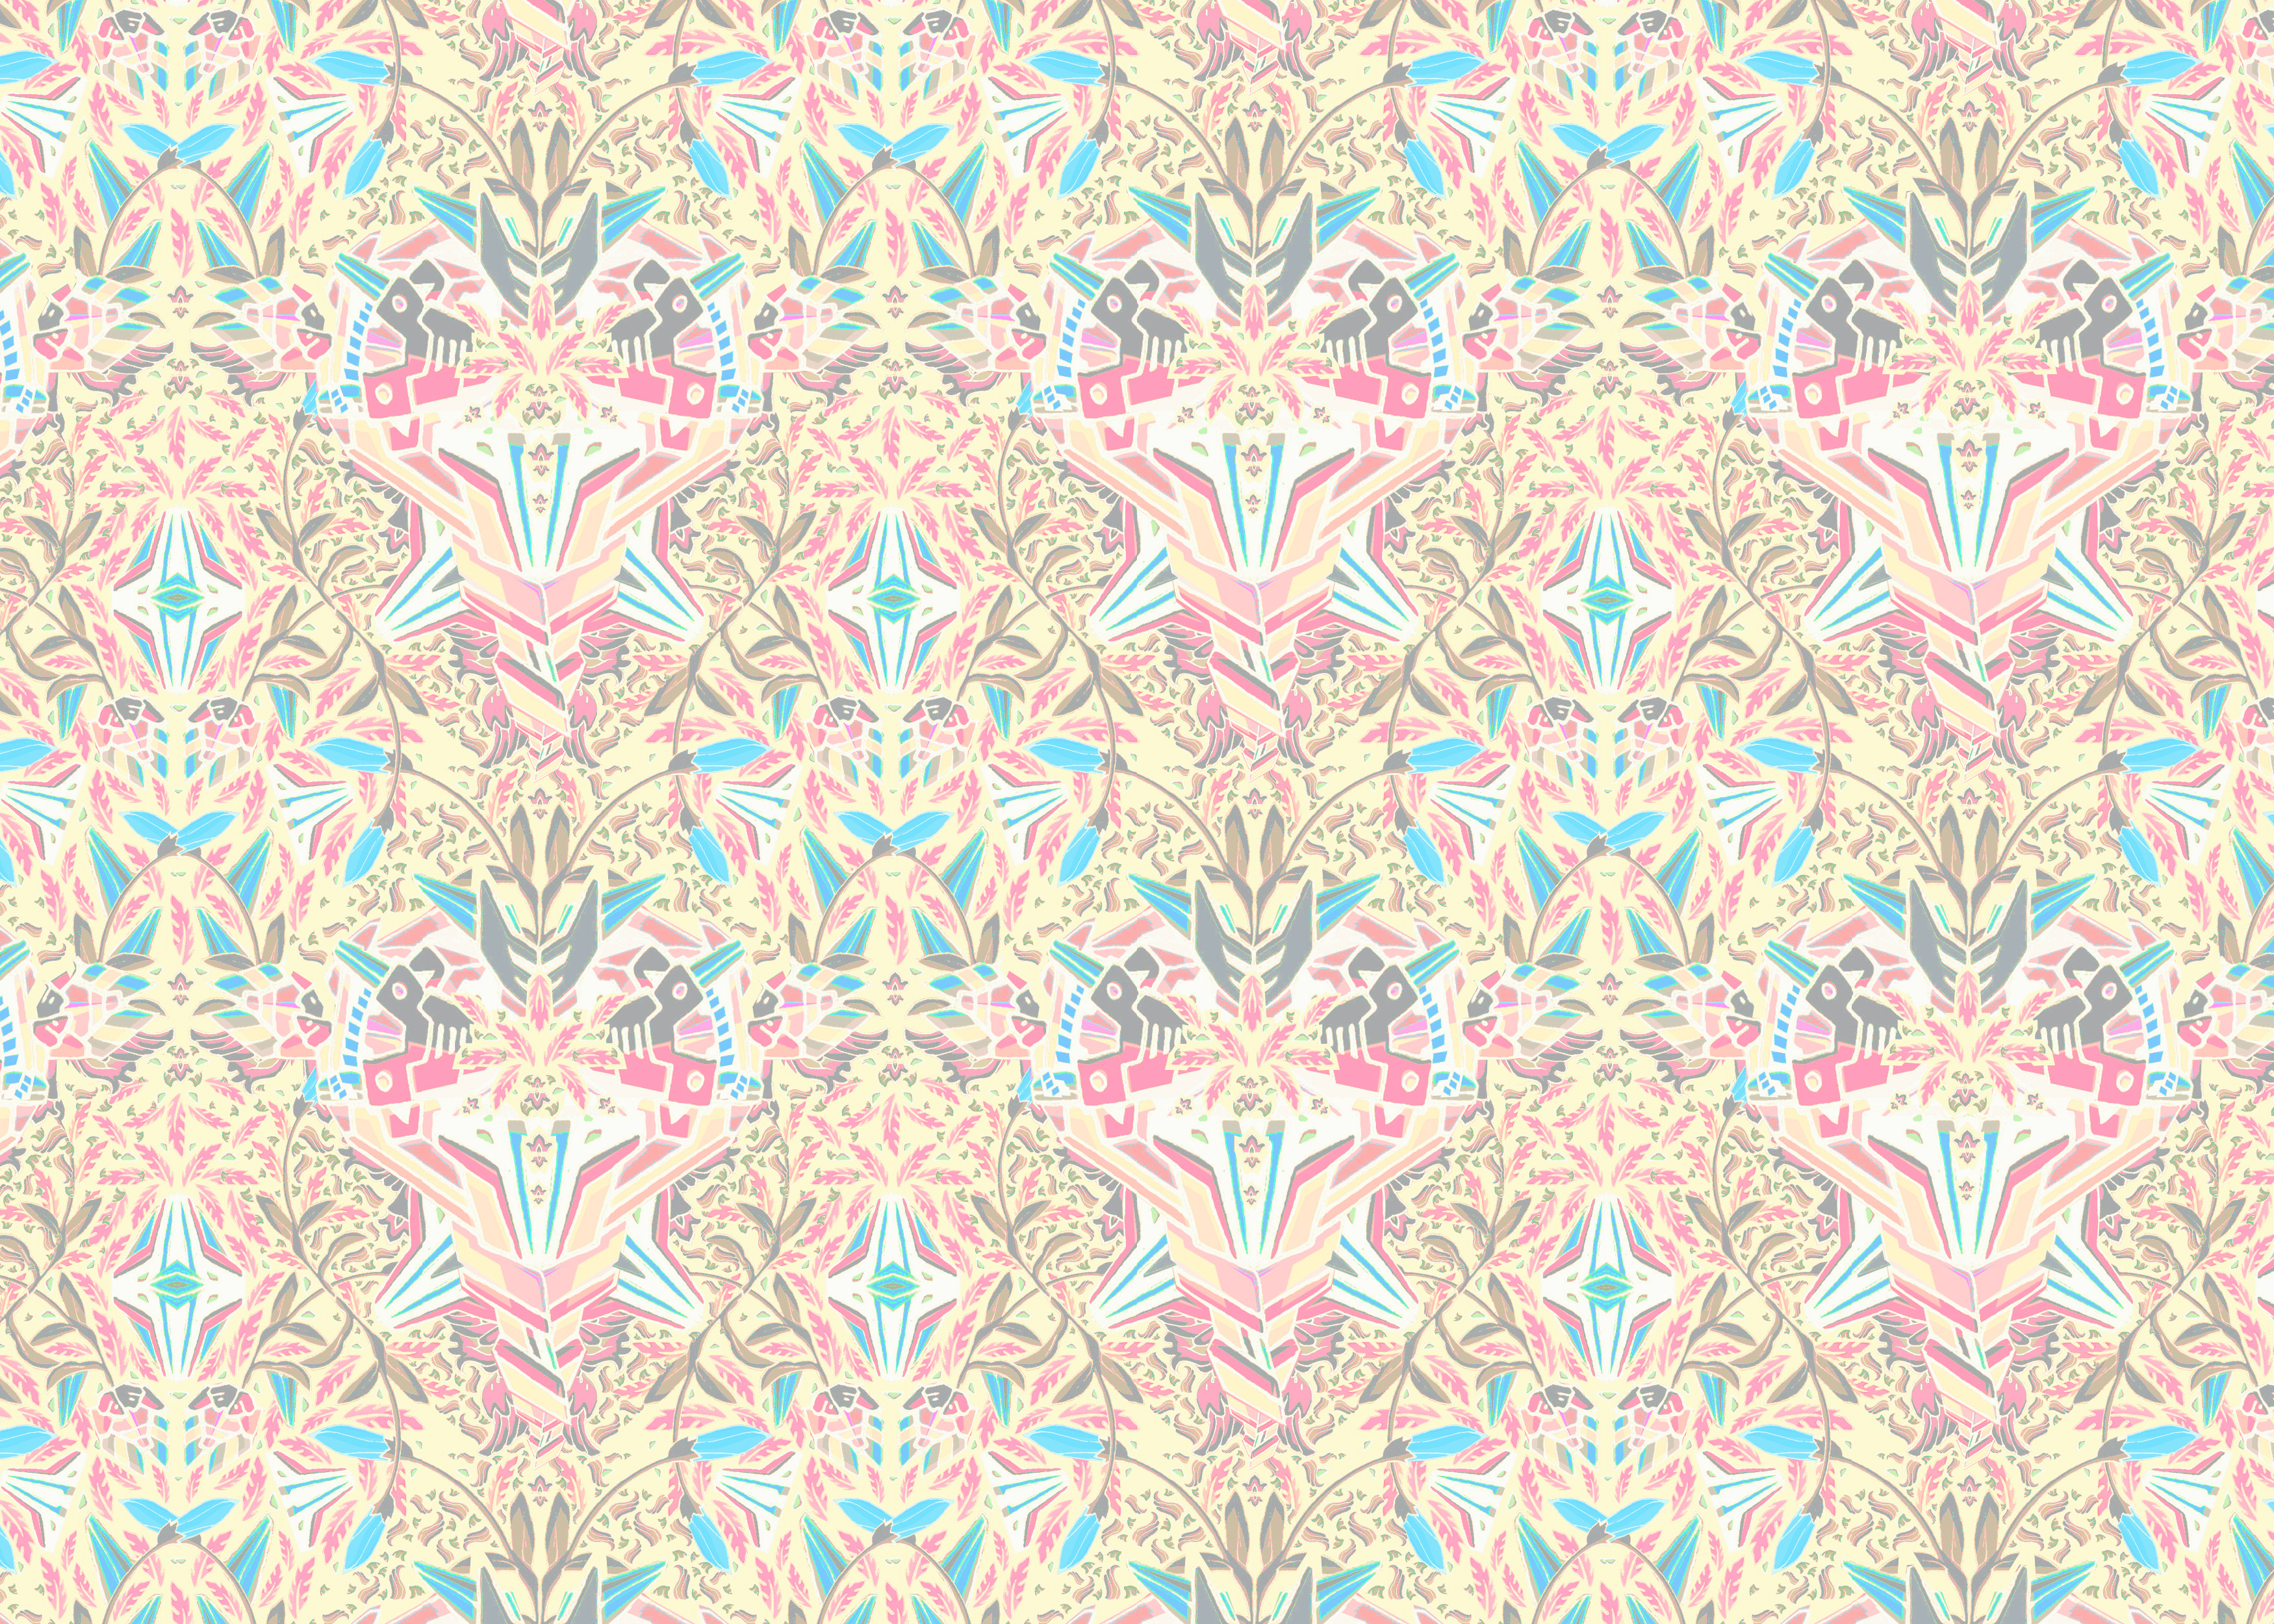 wallpaper pattern design 16 collection 14 wallpapers